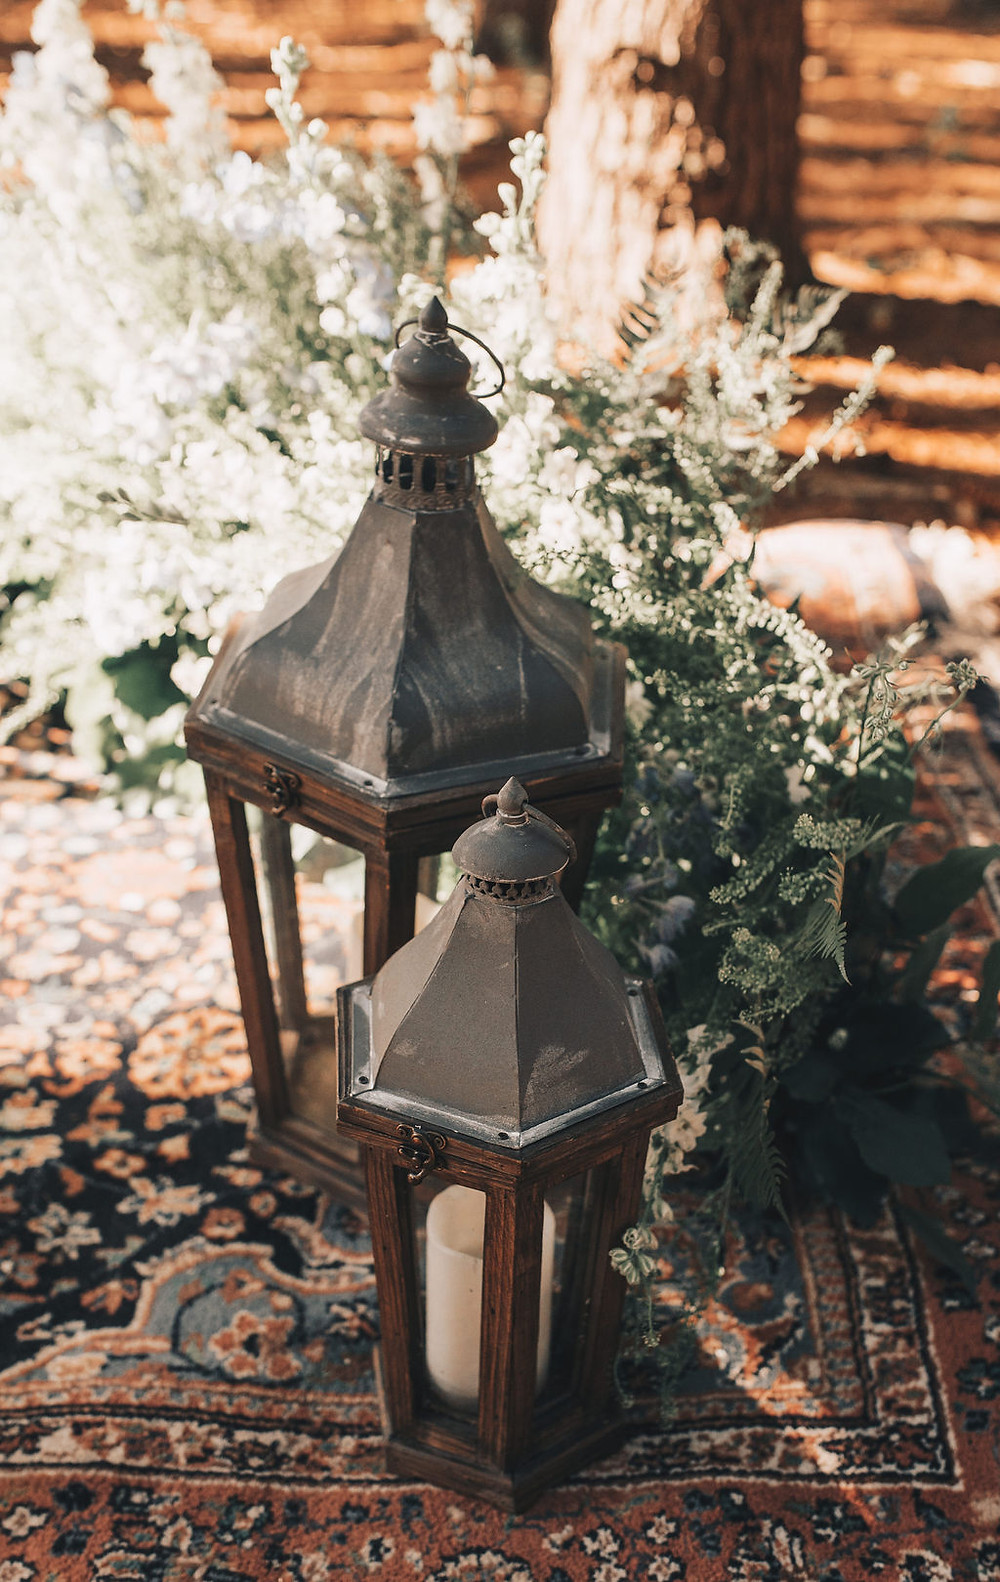 Pottery Barn lanterns create simple lighting for the woodsy elopement wedding site